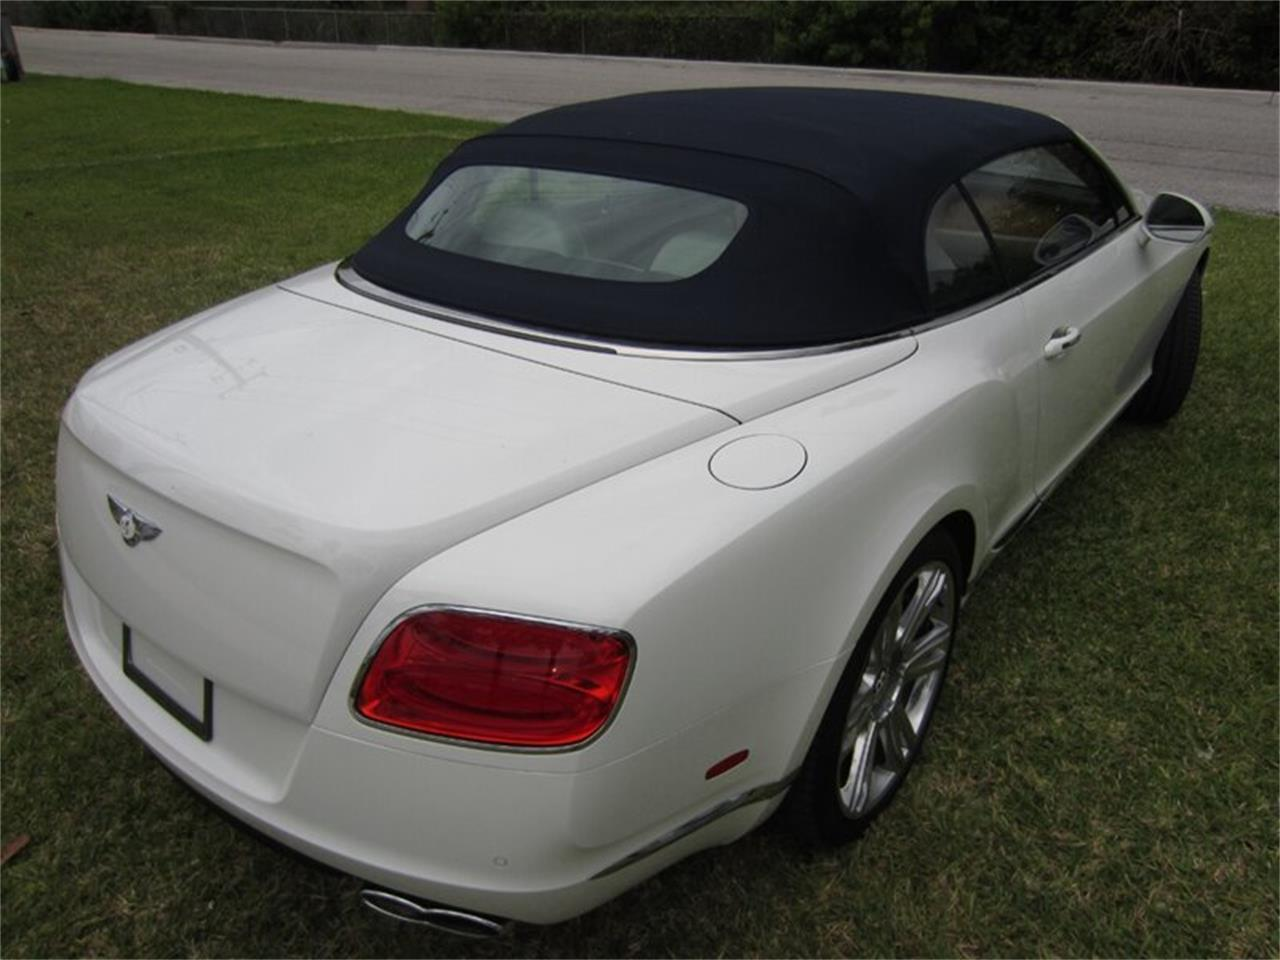 Large Picture of '13 Continental GTC V8 - $102,400.00 - Q2NI